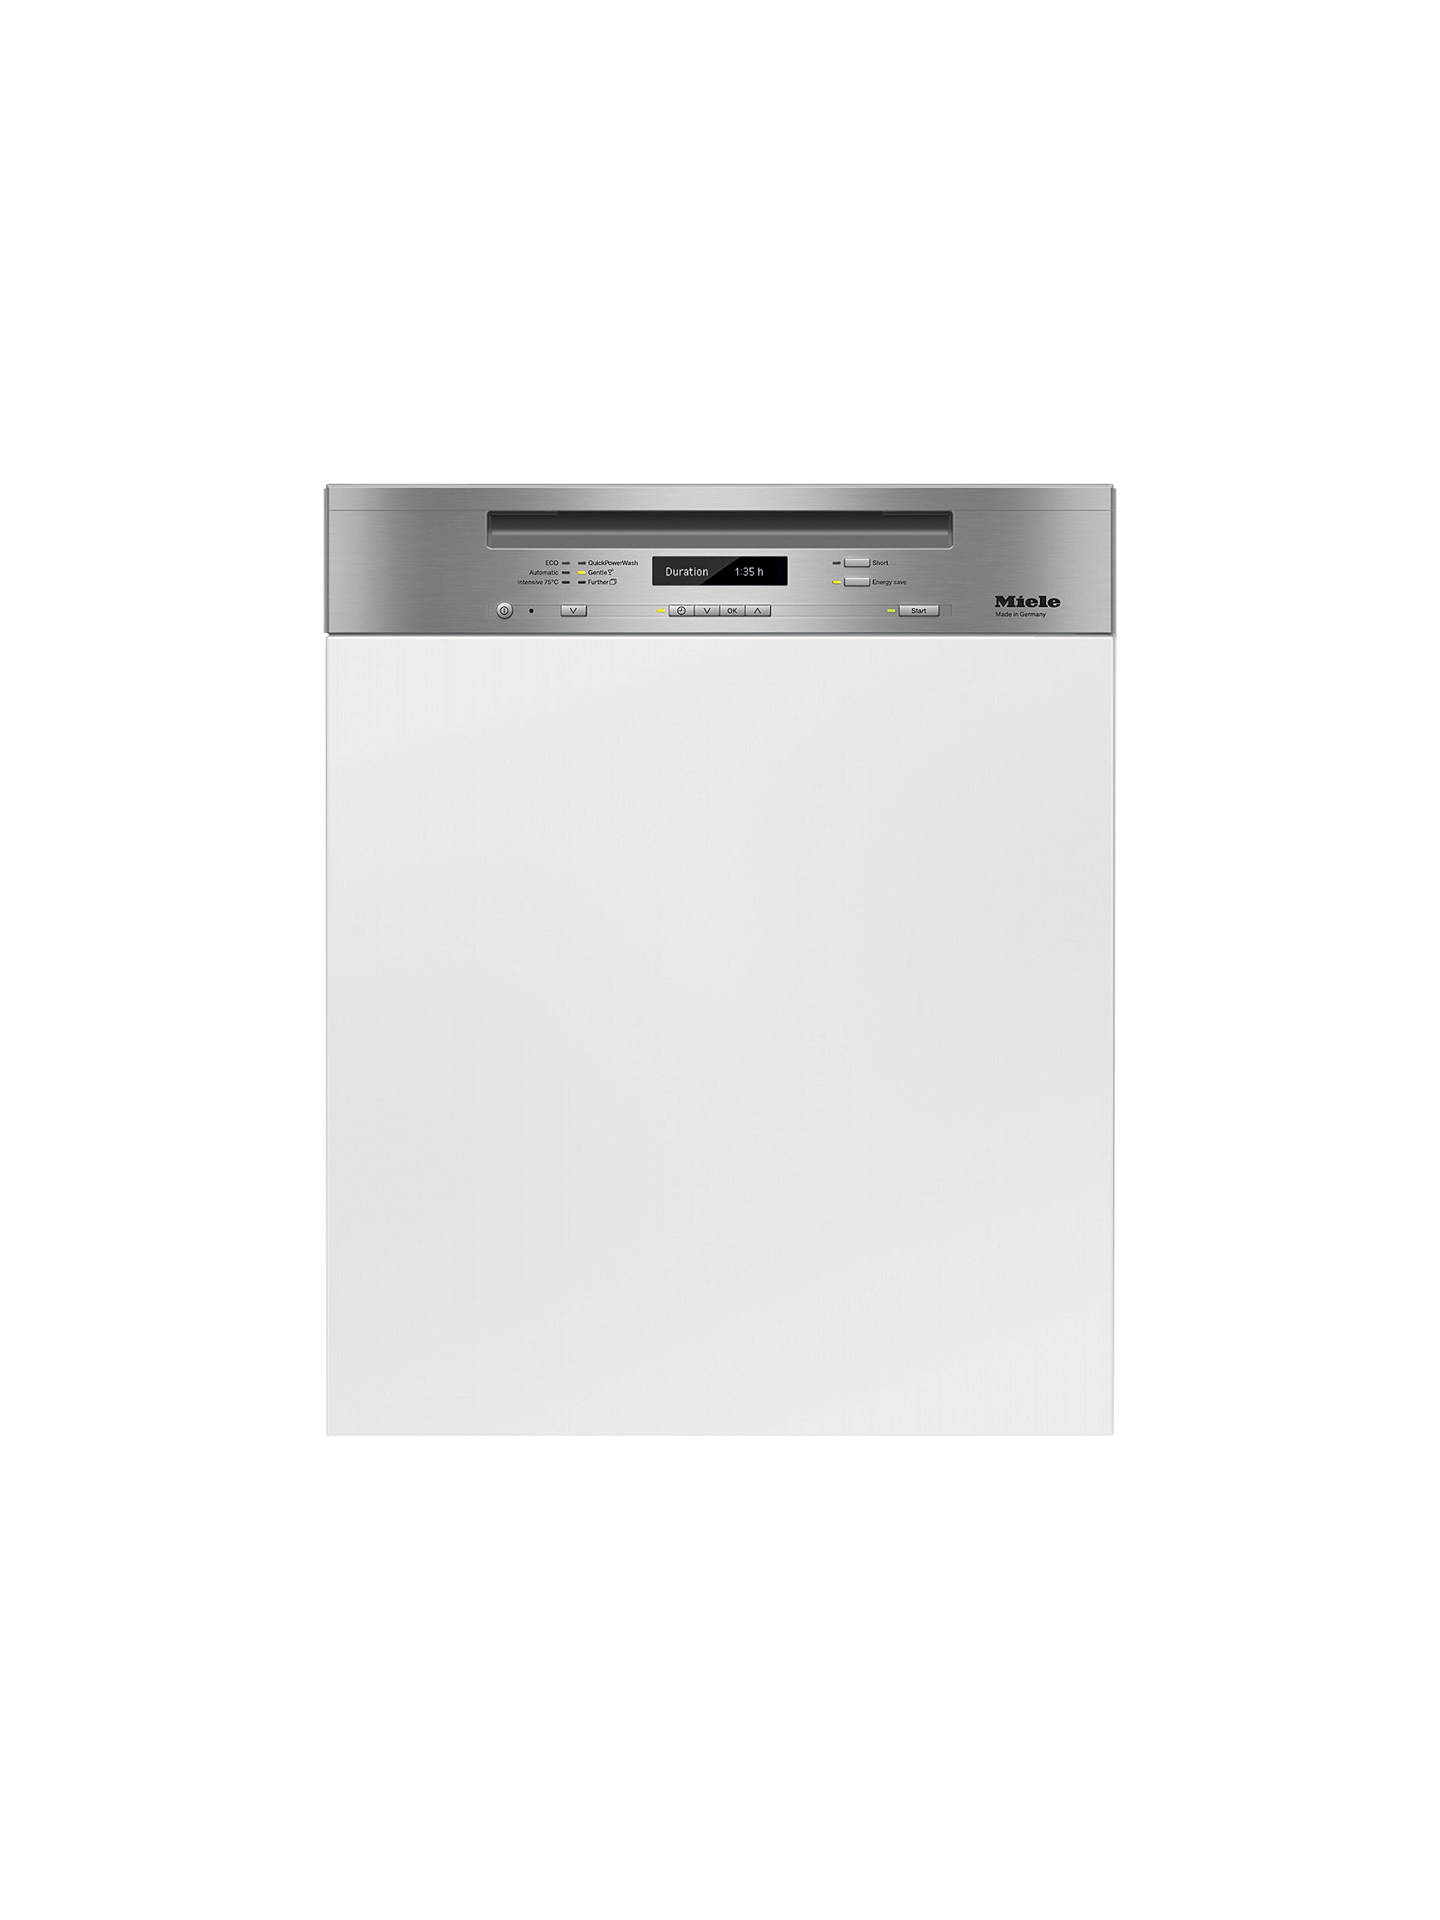 BuyMiele G6730 SCi Semi-Integrated Dishwasher, Clean Steel Online at johnlewis.com